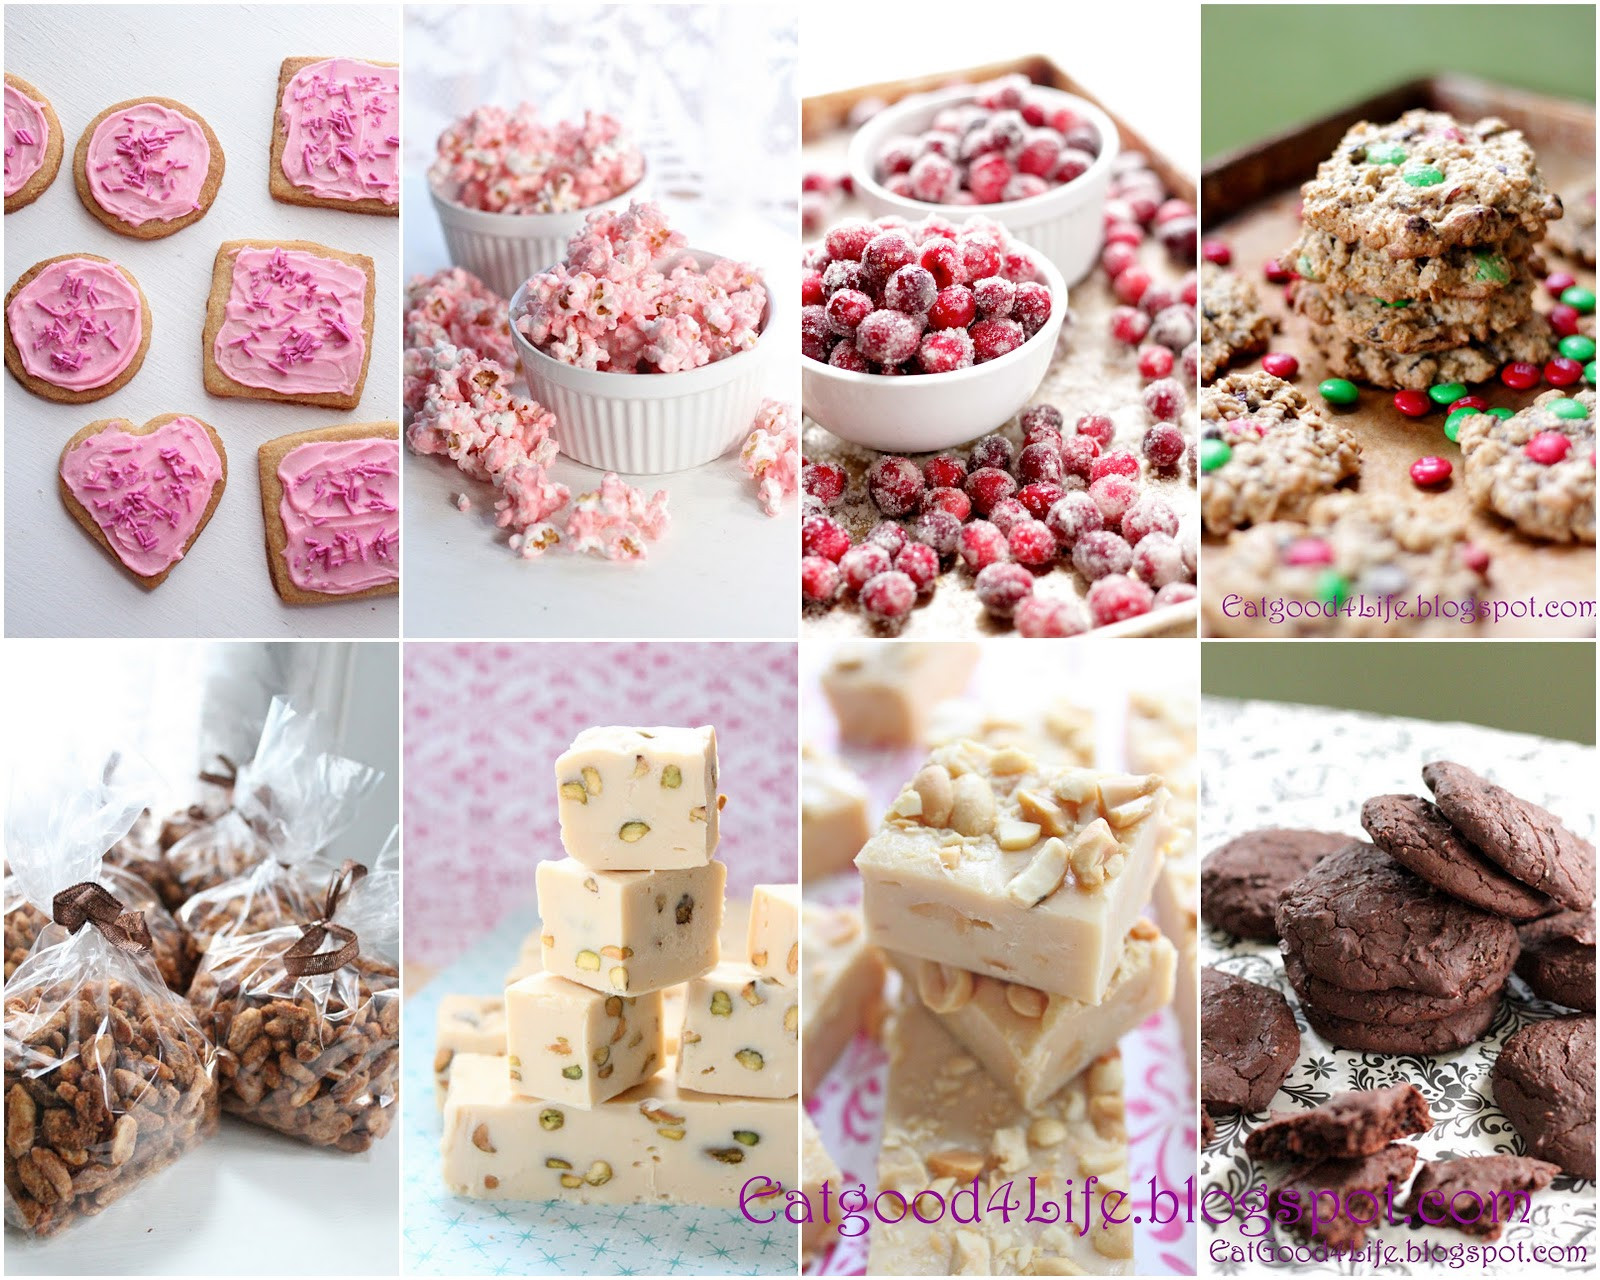 Best ideas about Baking Gift Ideas . Save or Pin My Top 16 Christmas t baking ideas Now.